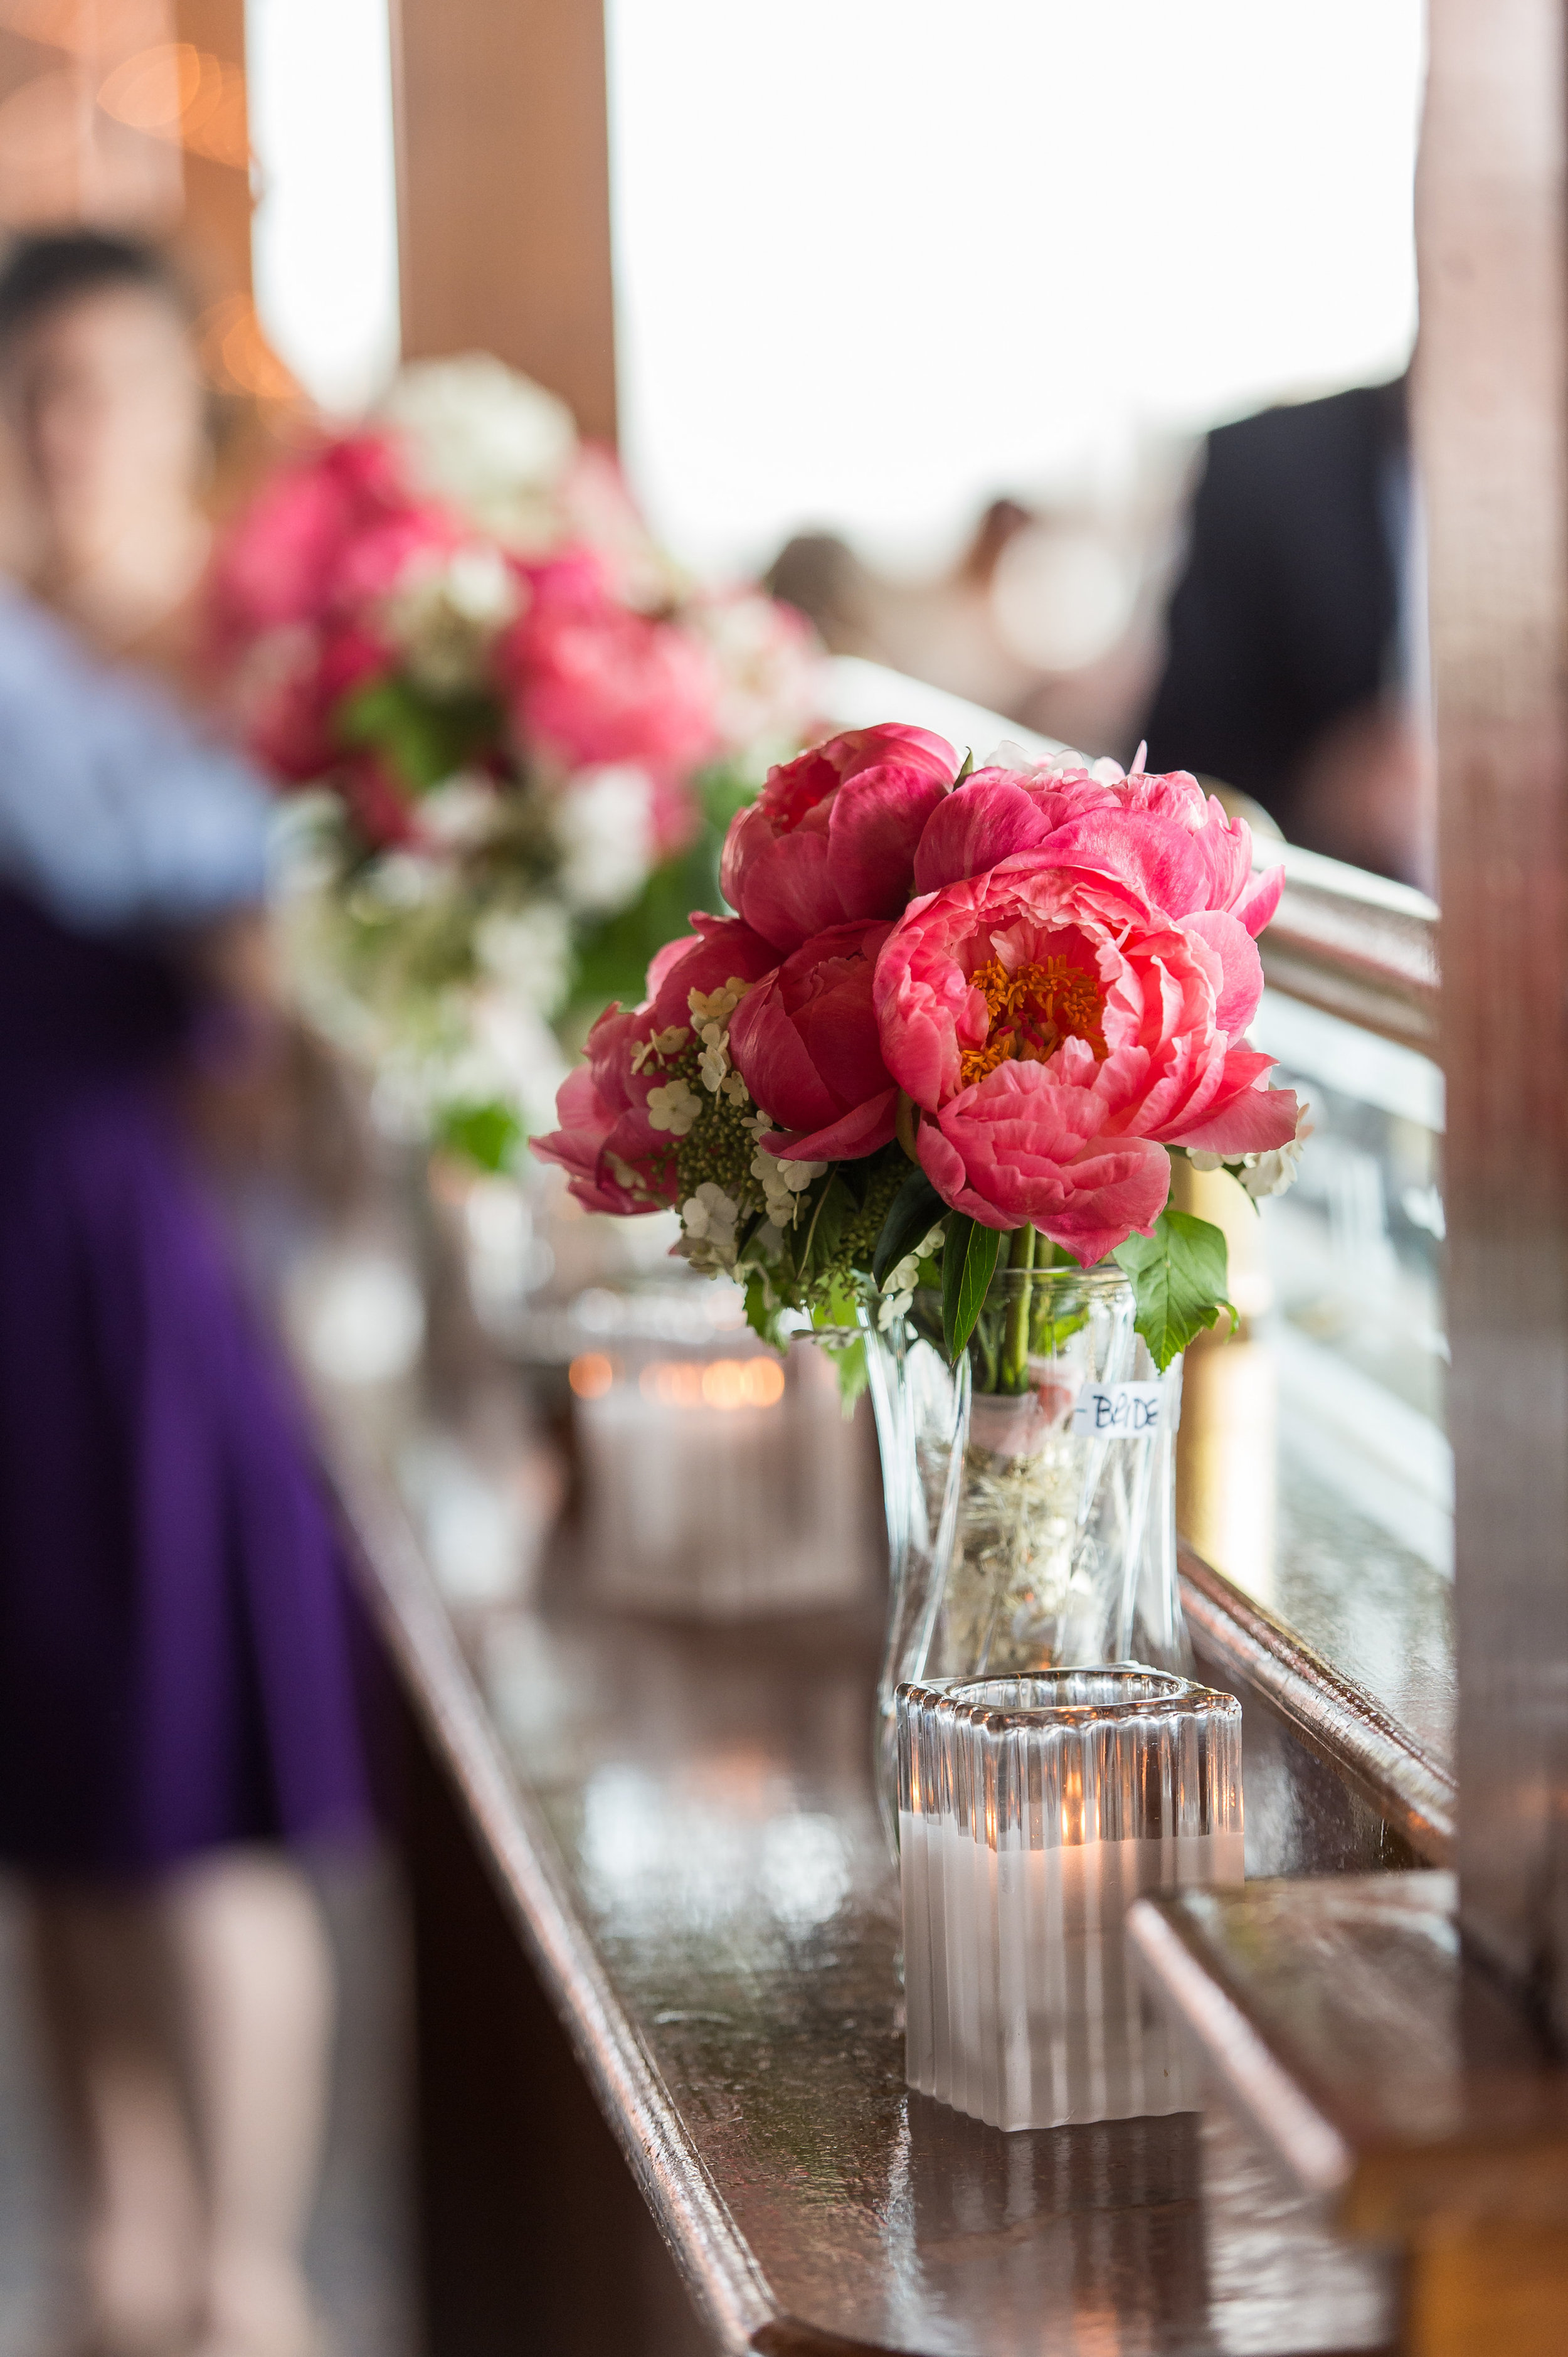 What a pretty pop of color. The bouquets are used for decoration after the I Do's.